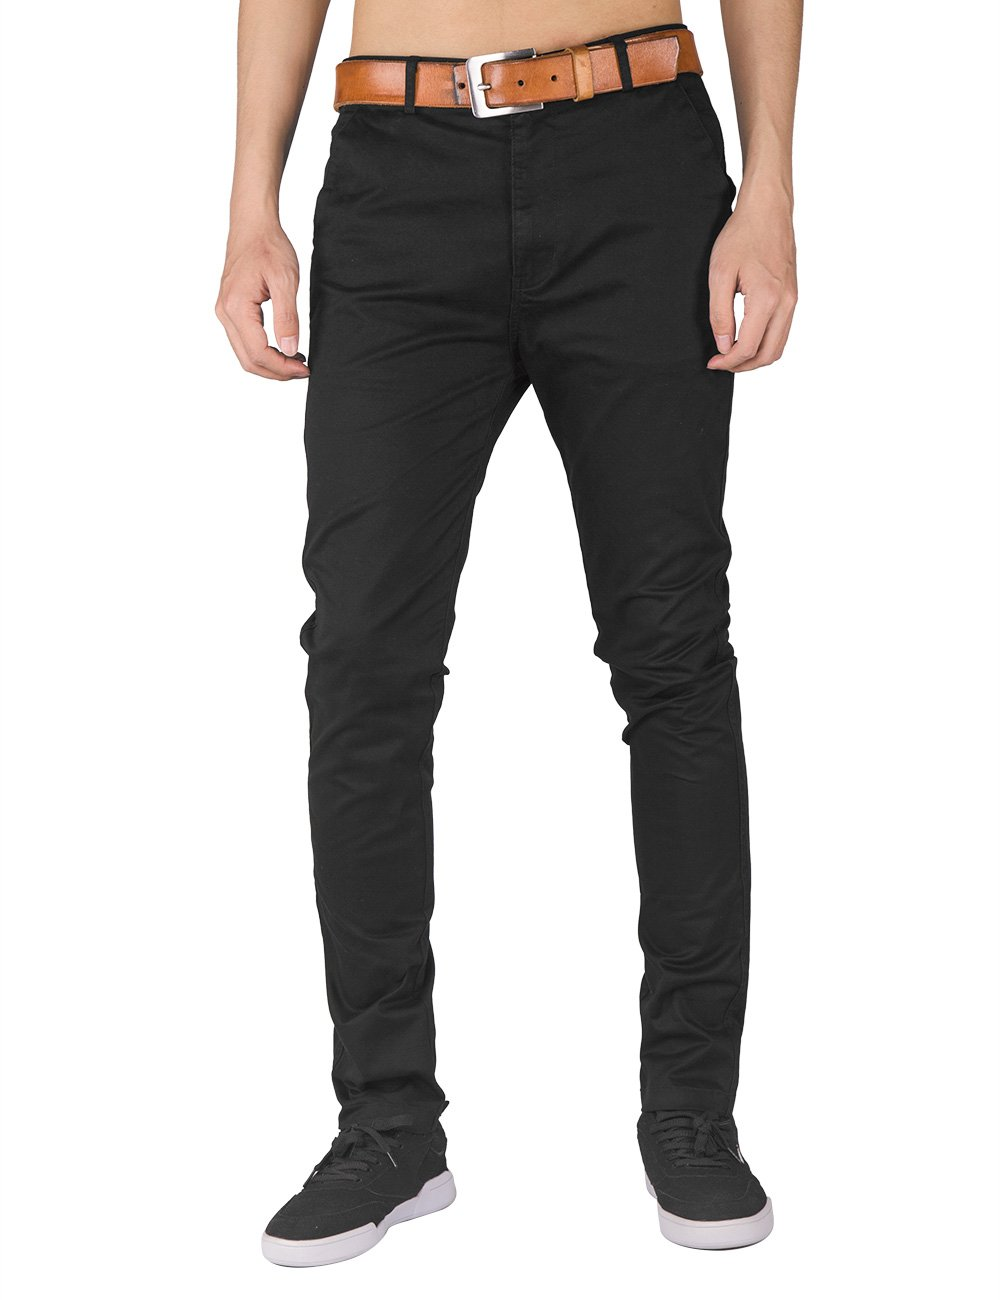 Italy Morn Men's Chino Flat Front Casual Pants M Black